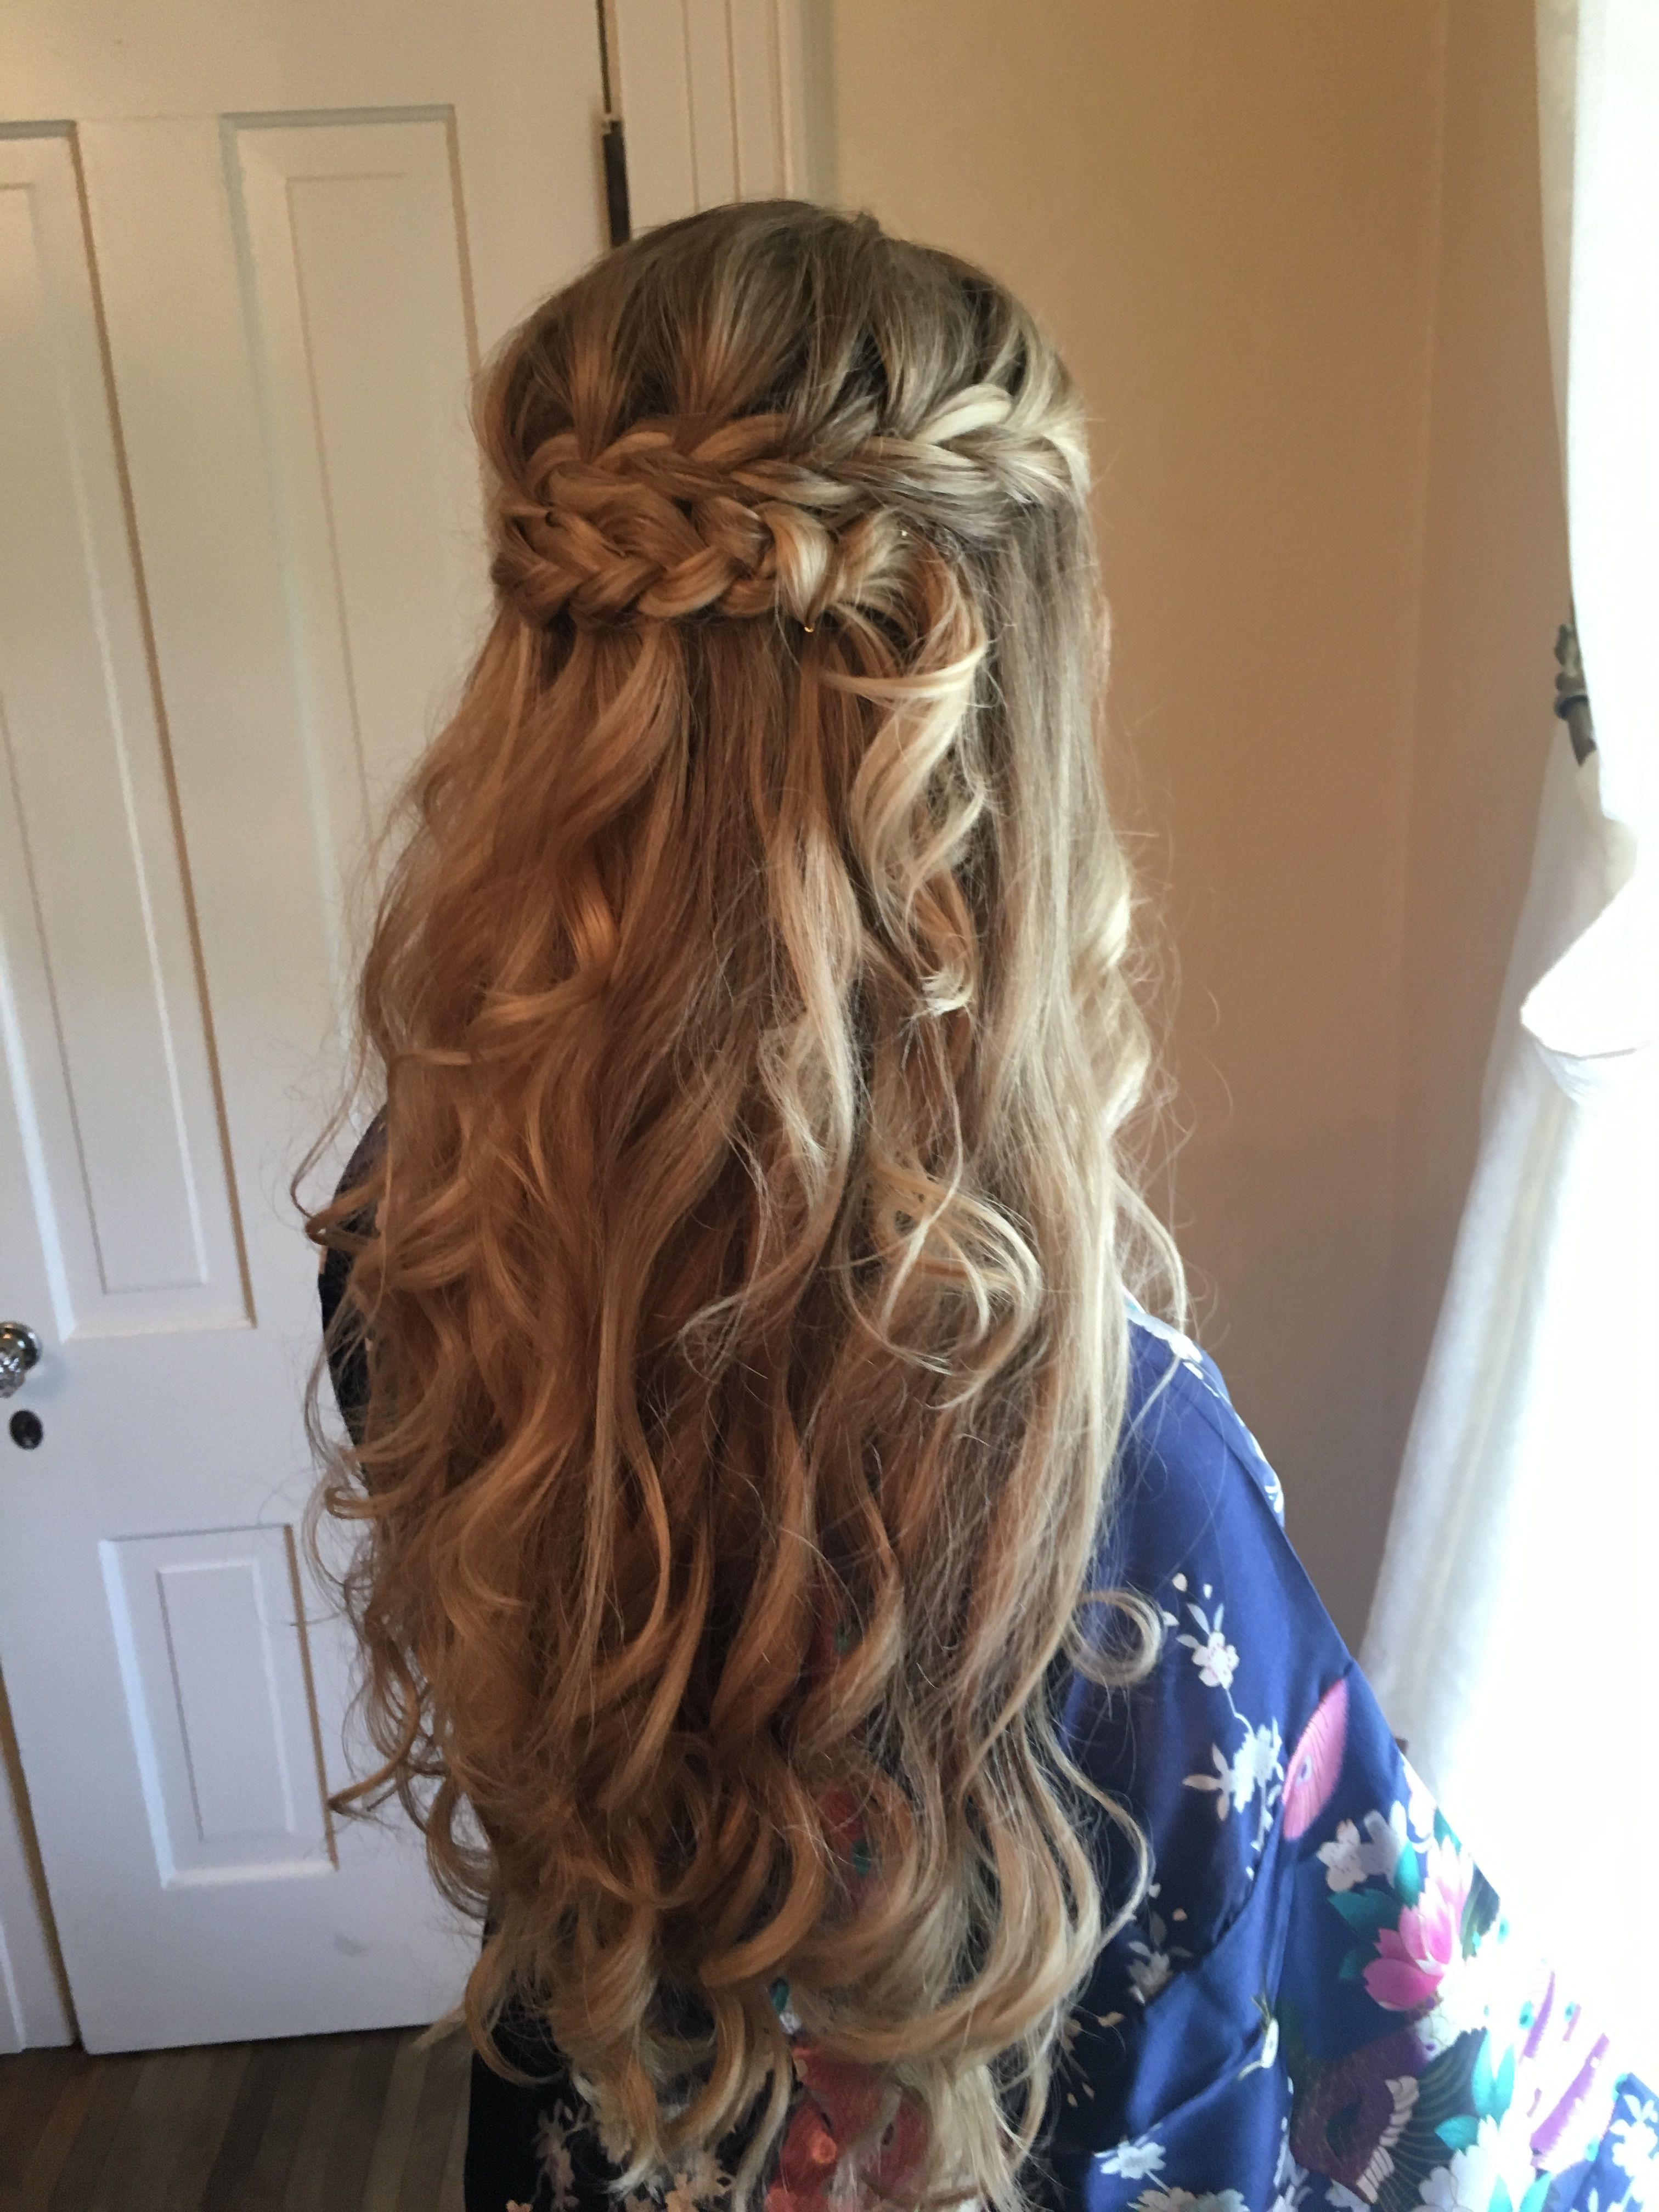 half up half down up do, braid, curls, wedding hairstyles